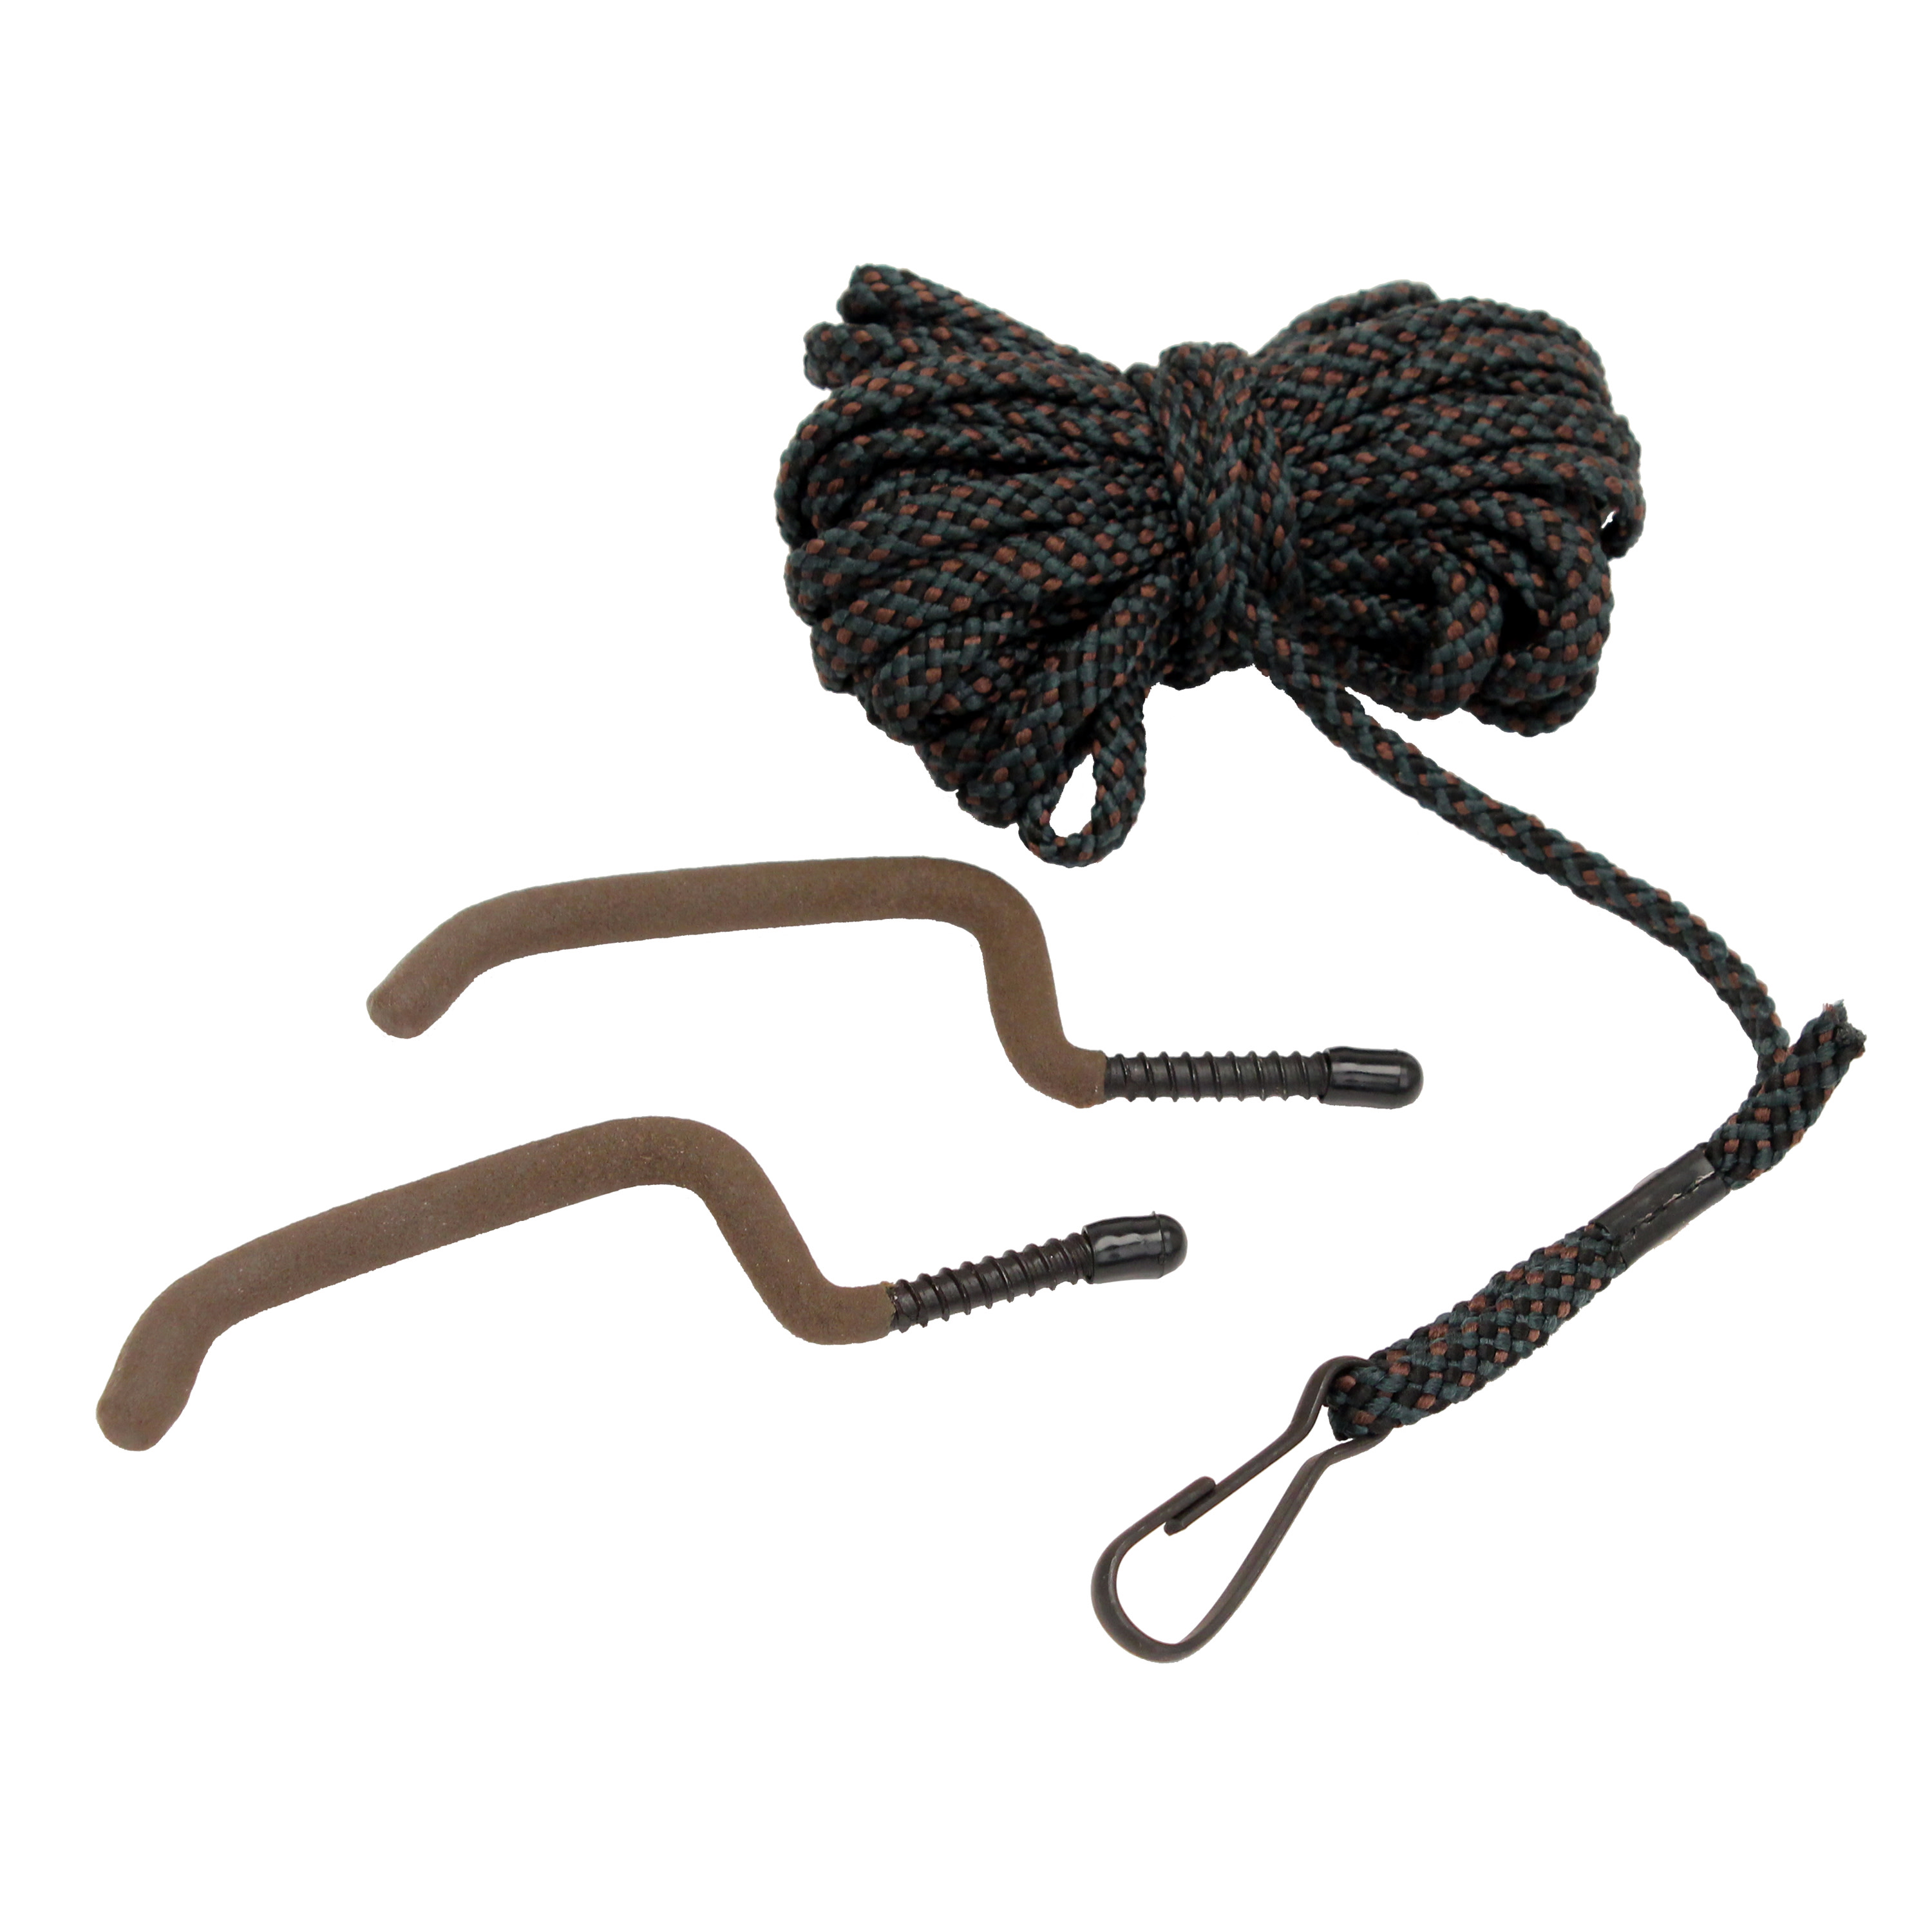 Allen Utility Rope w/ Two Bow Hangers